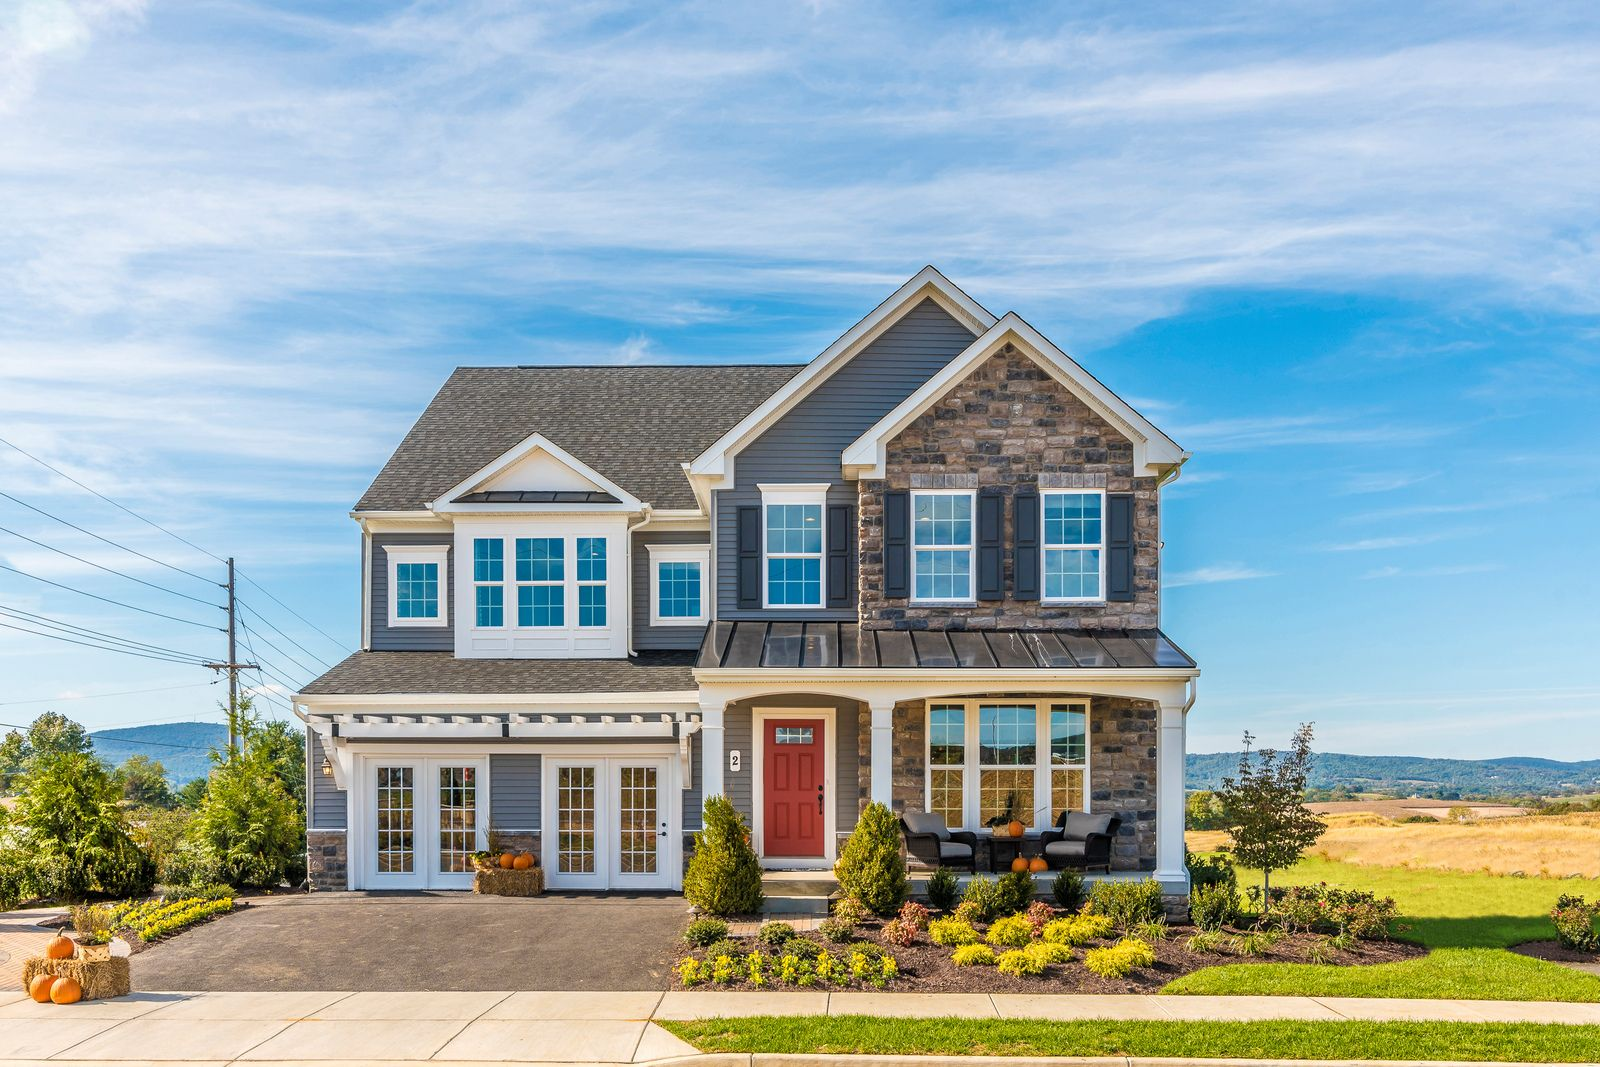 Single Family for Active at Fieldside & Gleneagles At St. Charles - Torino 11891 St. Linus Drive Waldorf, Maryland 20602 United States